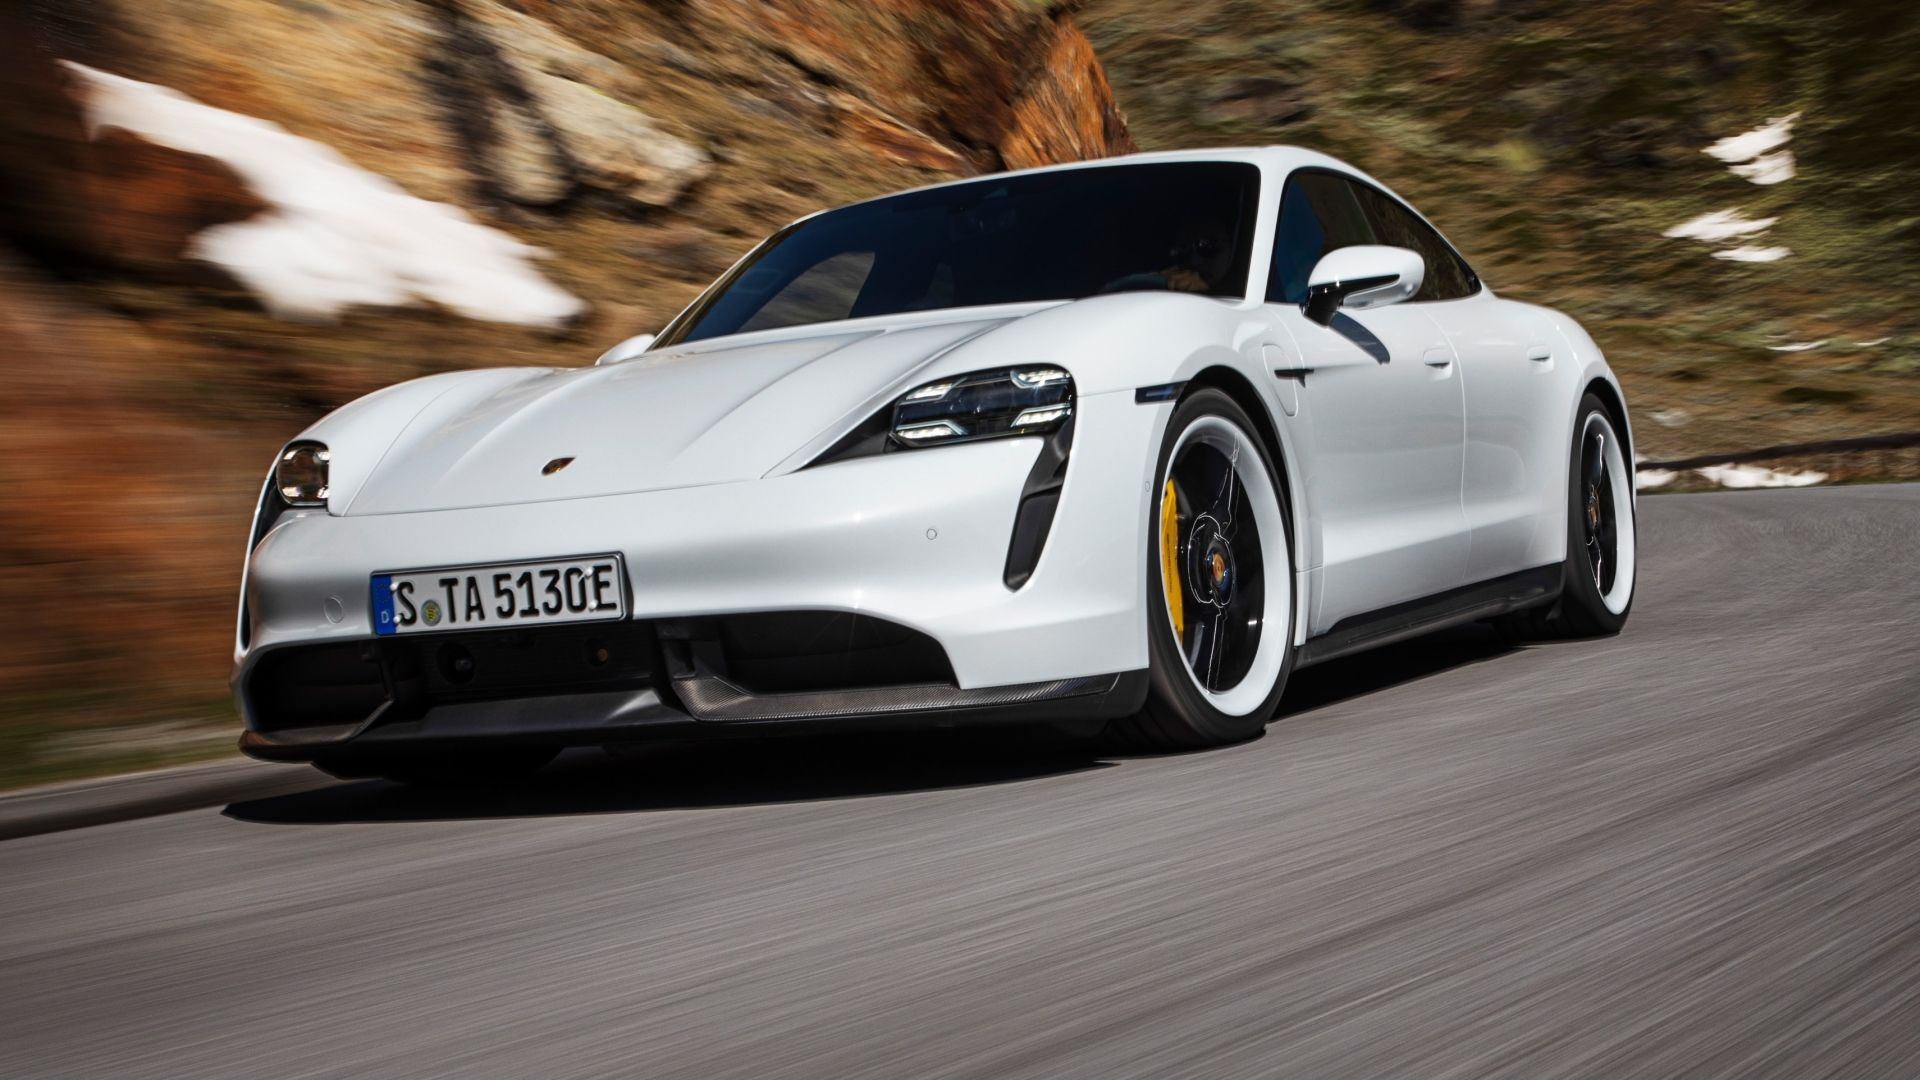 Porsche Unveils First All-Electric Sports Car: the Taycan